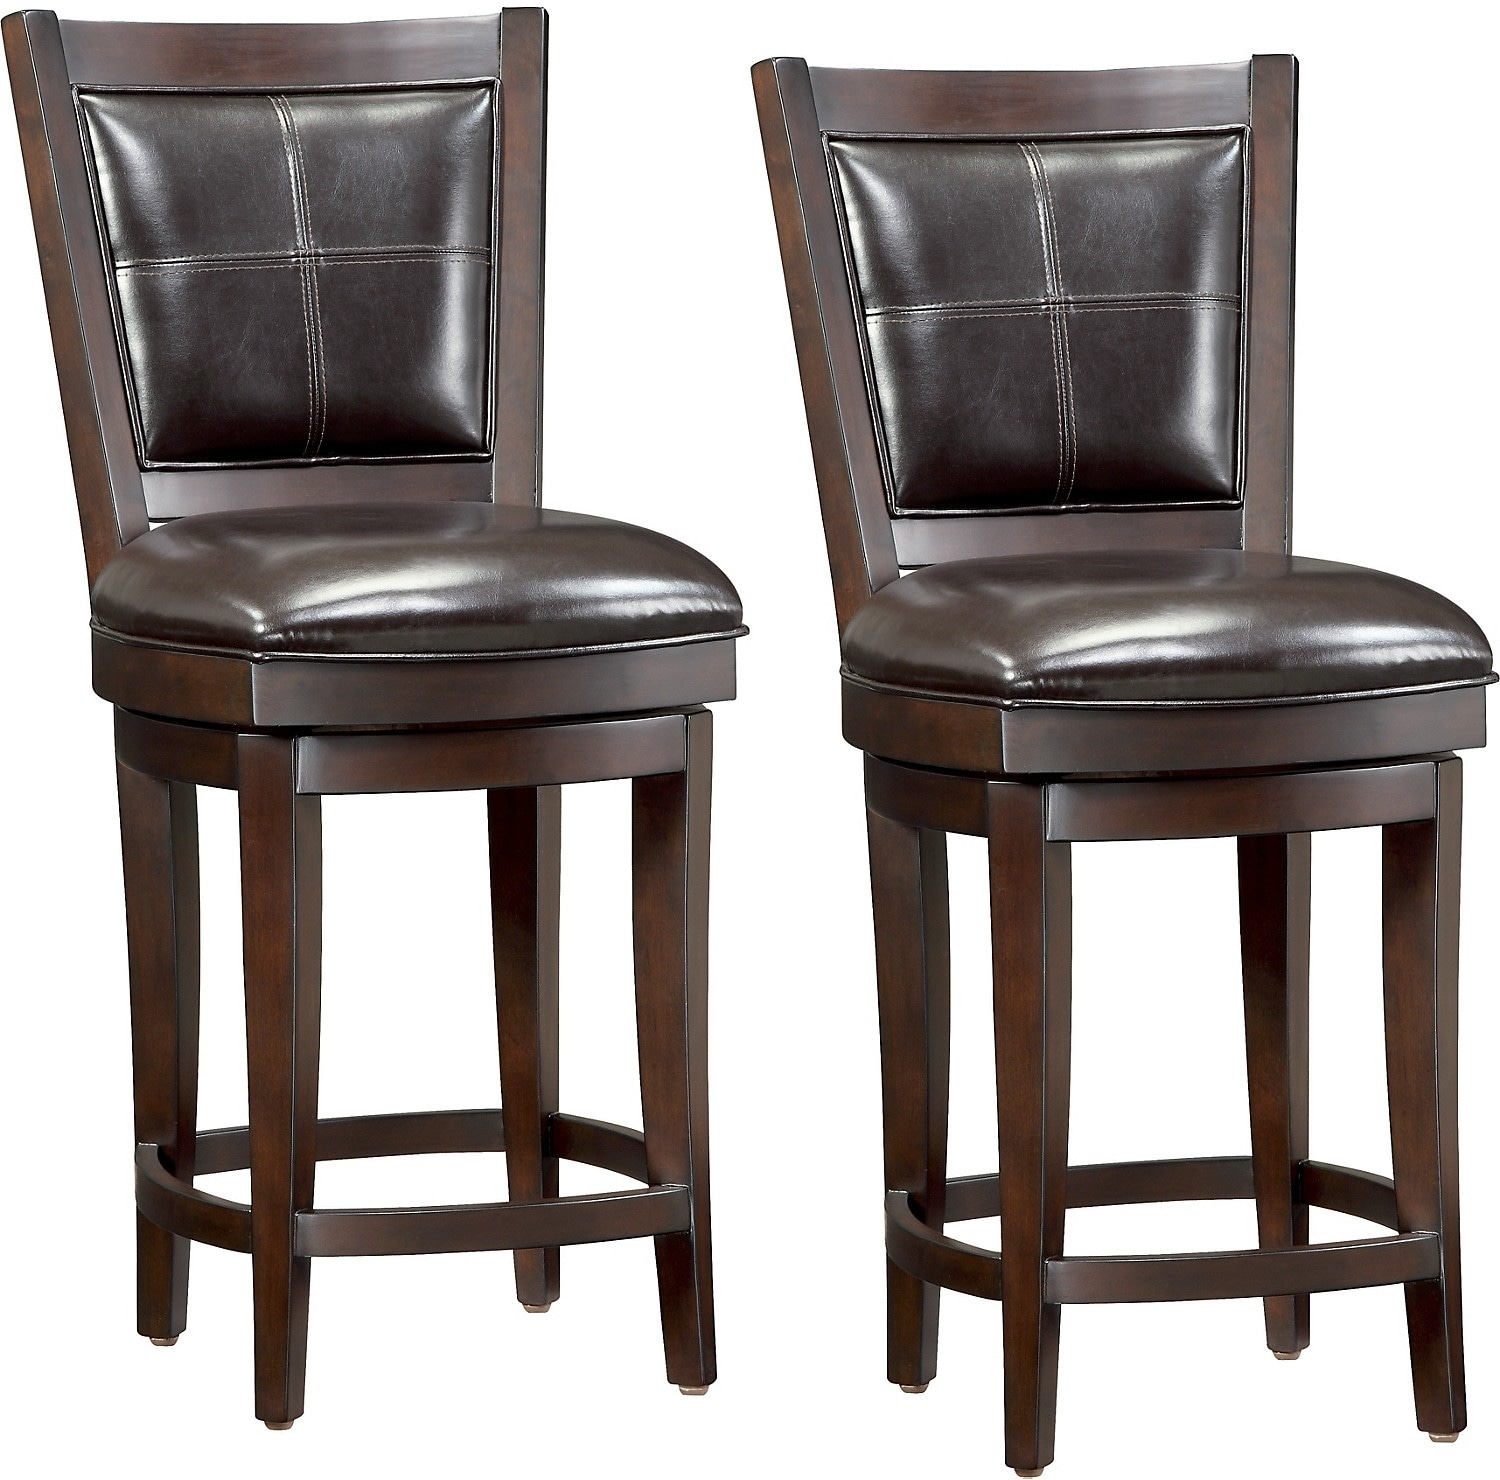 "Chase 24"" Bar Stools, Set of 2"